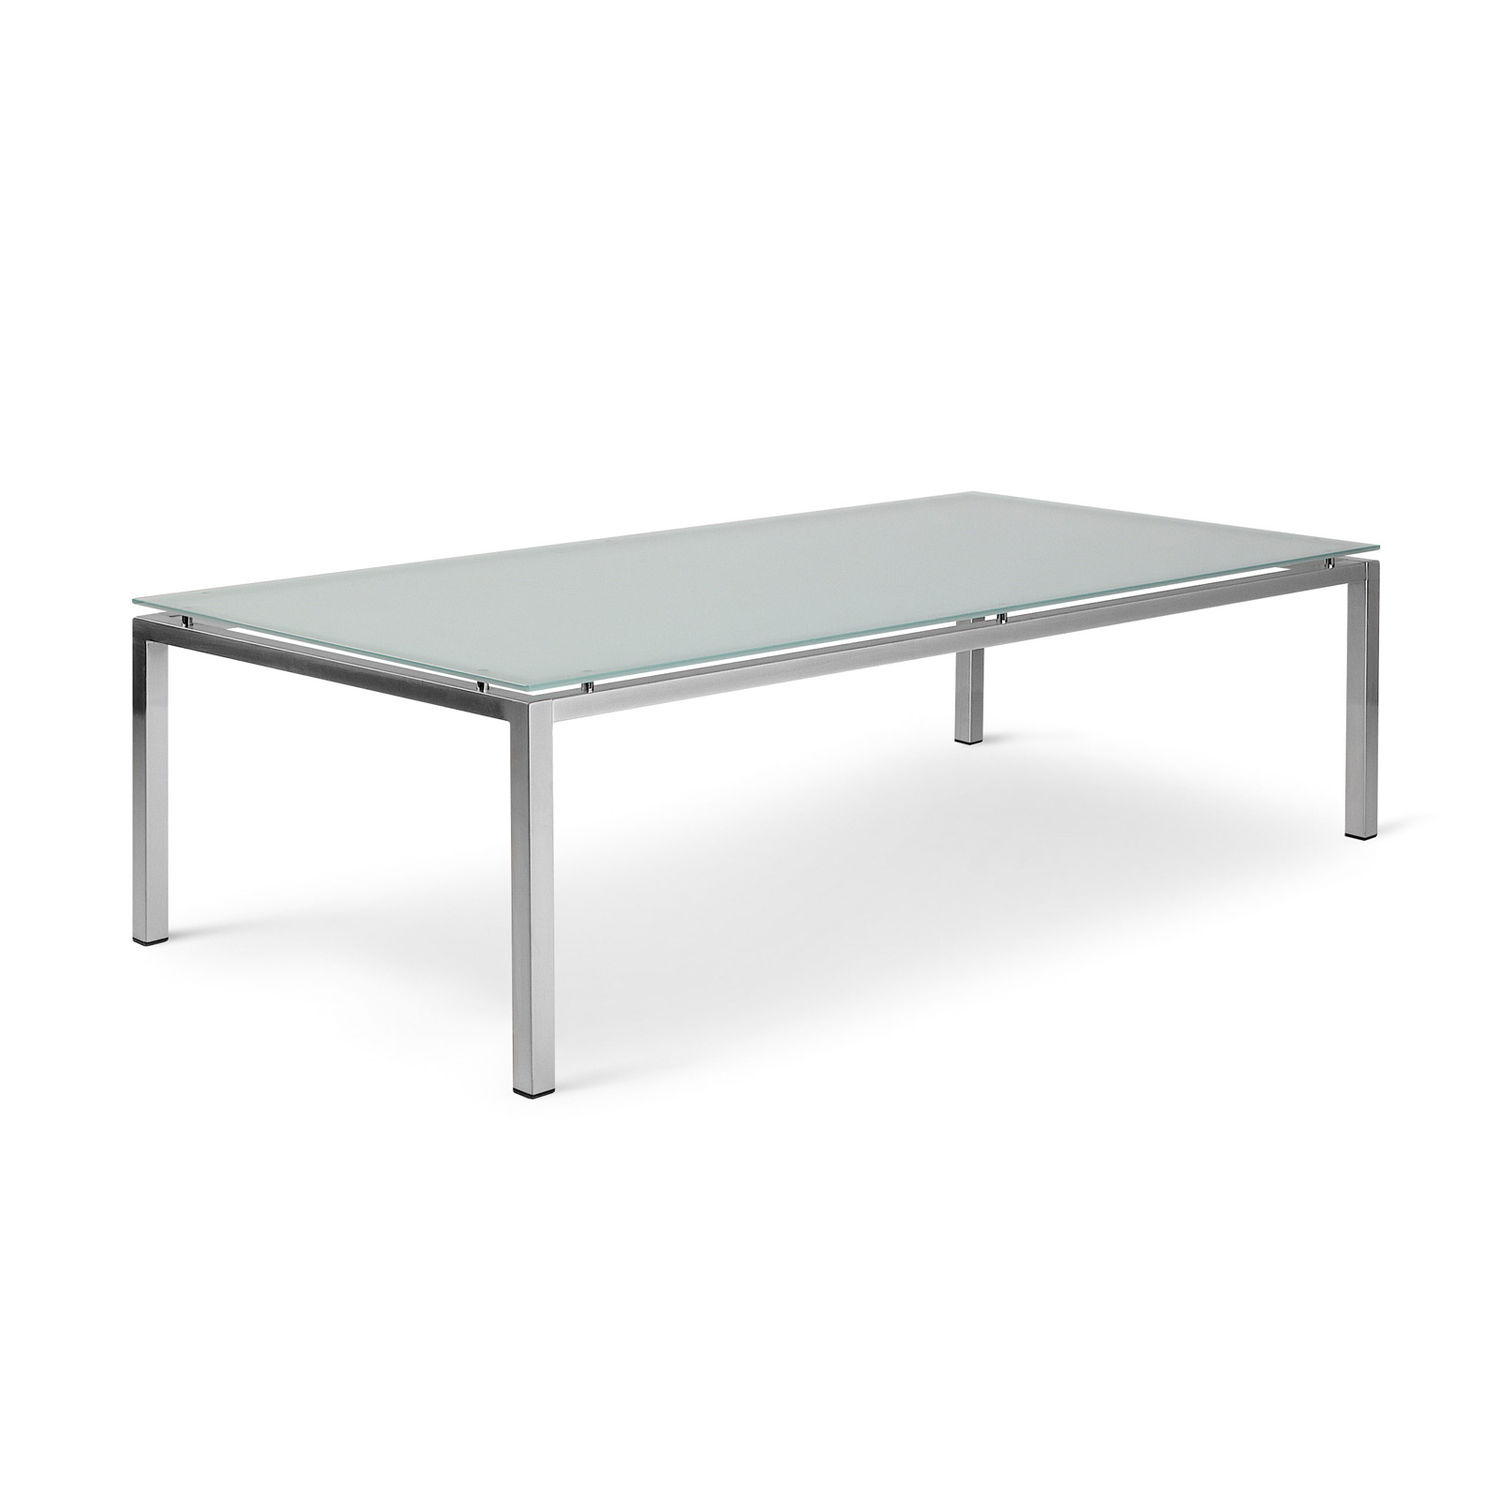 Contemporary coffee table tempered glass rectangular